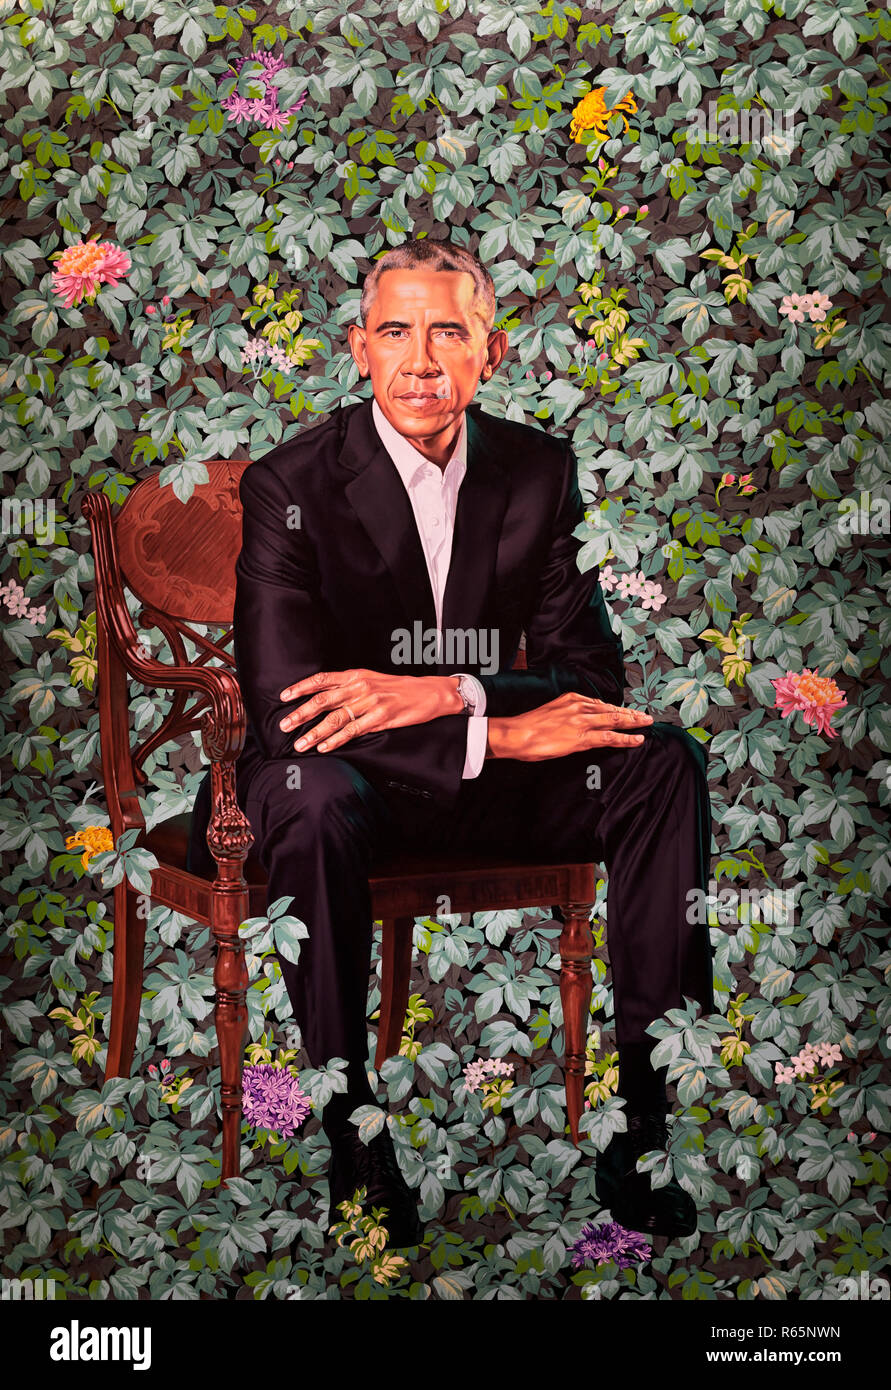 Barack Obama official portrait by Kehindre Wiley - Stock Image